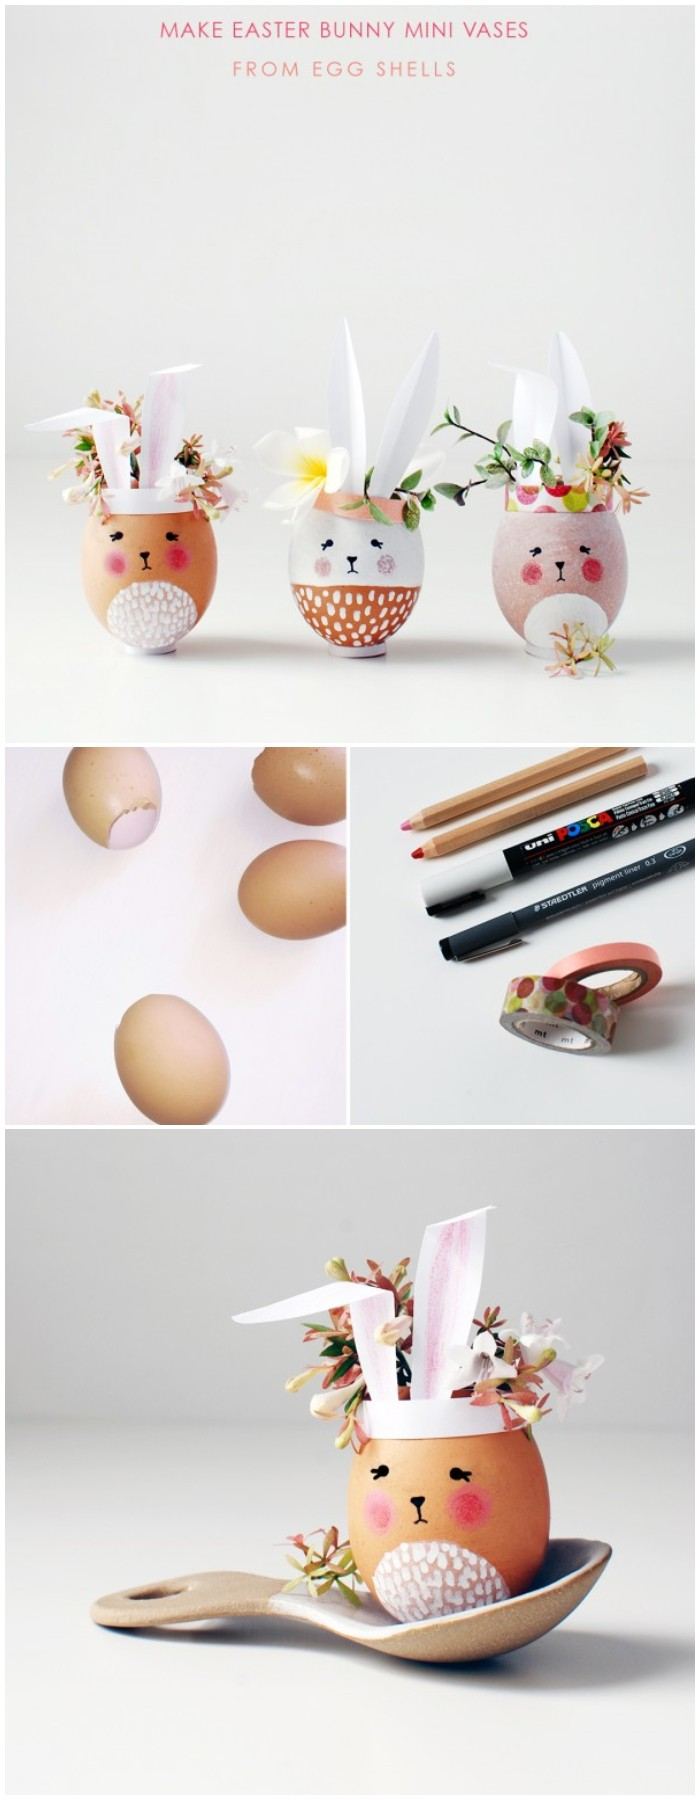 Make adorable Easter Bunny mini vases from eggshells